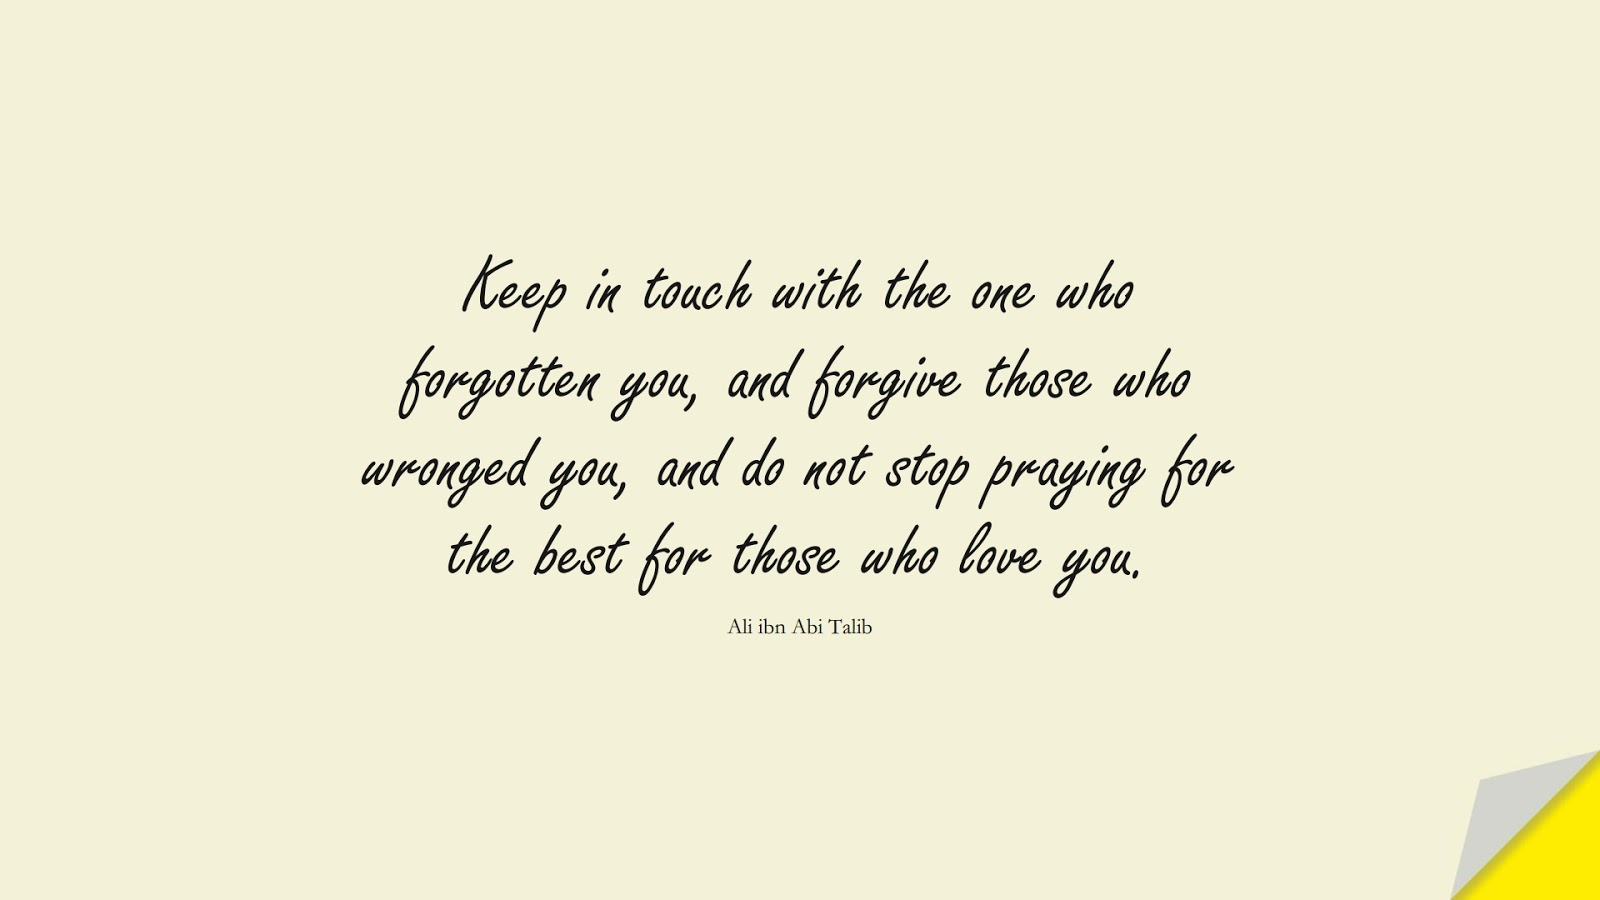 Keep in touch with the one who forgotten you, and forgive those who wronged you, and do not stop praying for the best for those who love you. (Ali ibn Abi Talib);  #AliQuotes